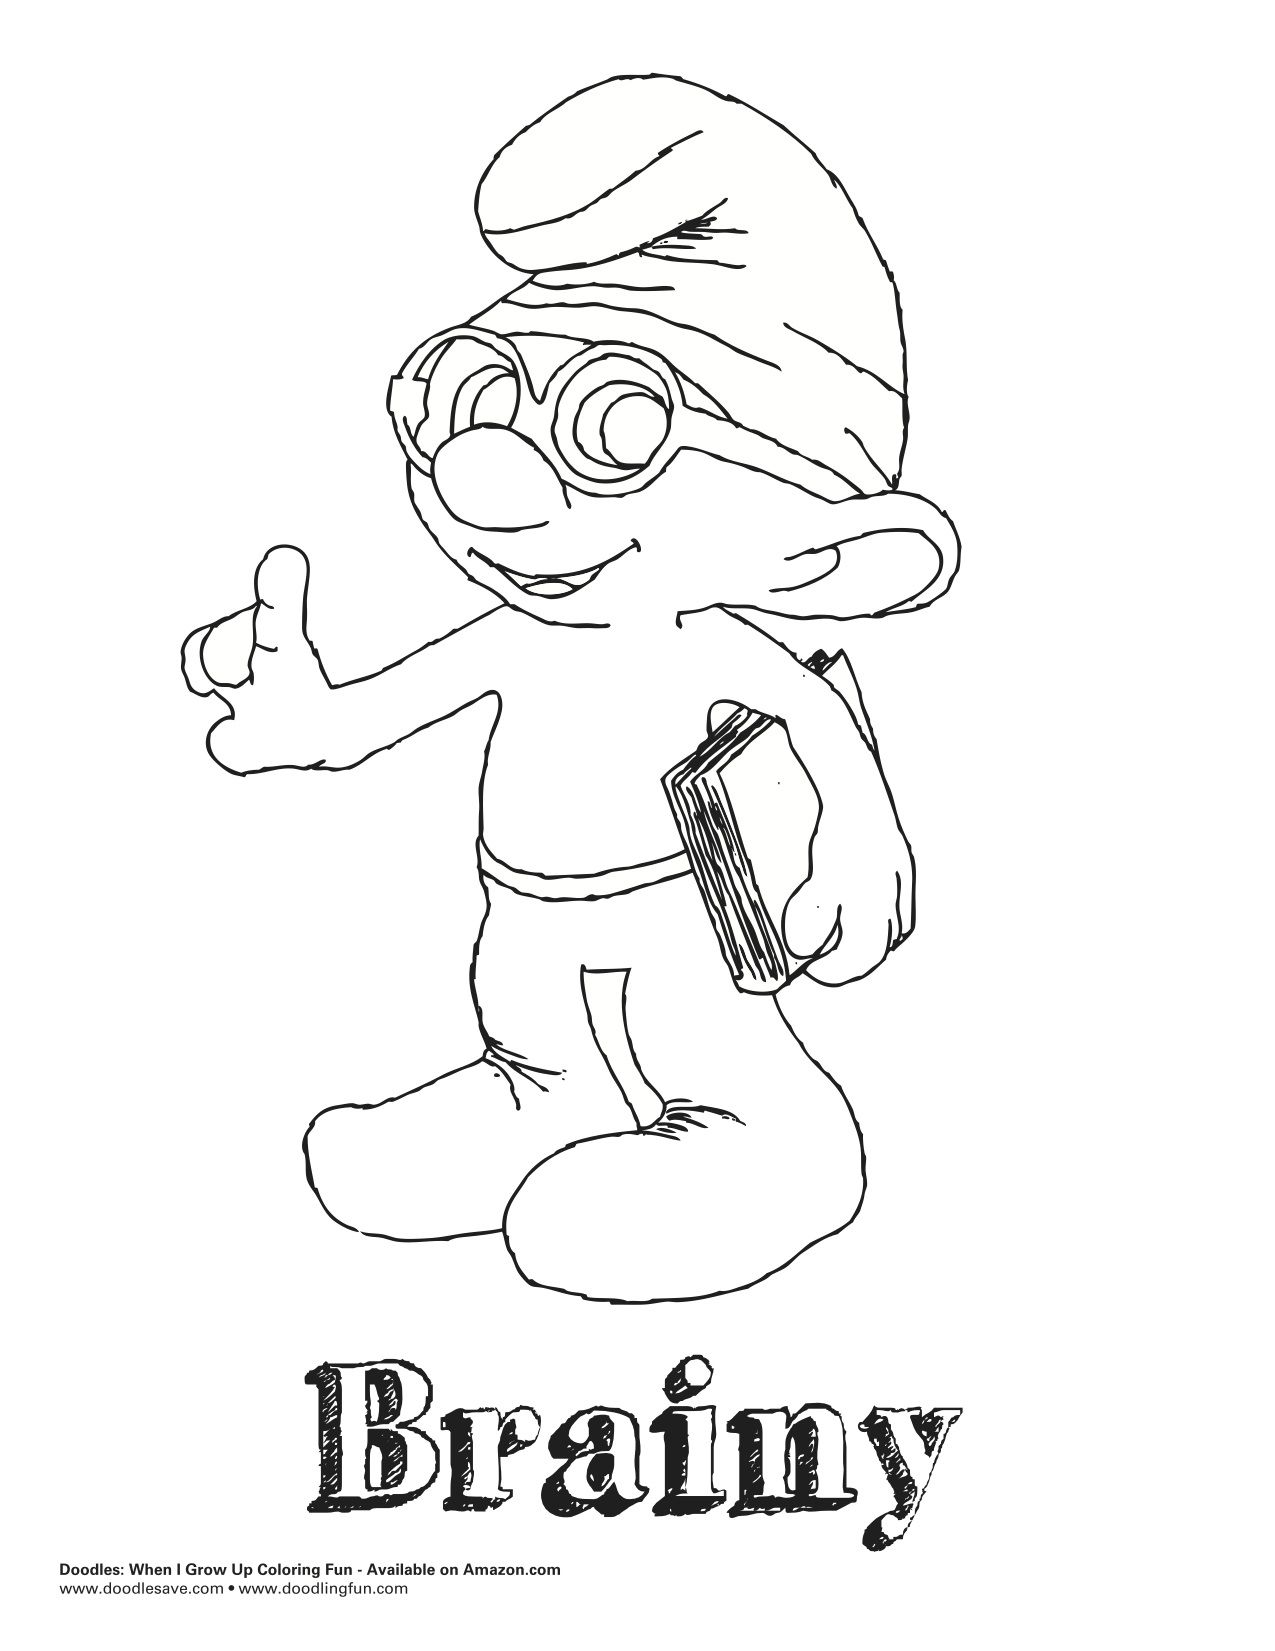 Smurf 2 Coloring Sheet Teachers Students Crafts Coloring Smurfs